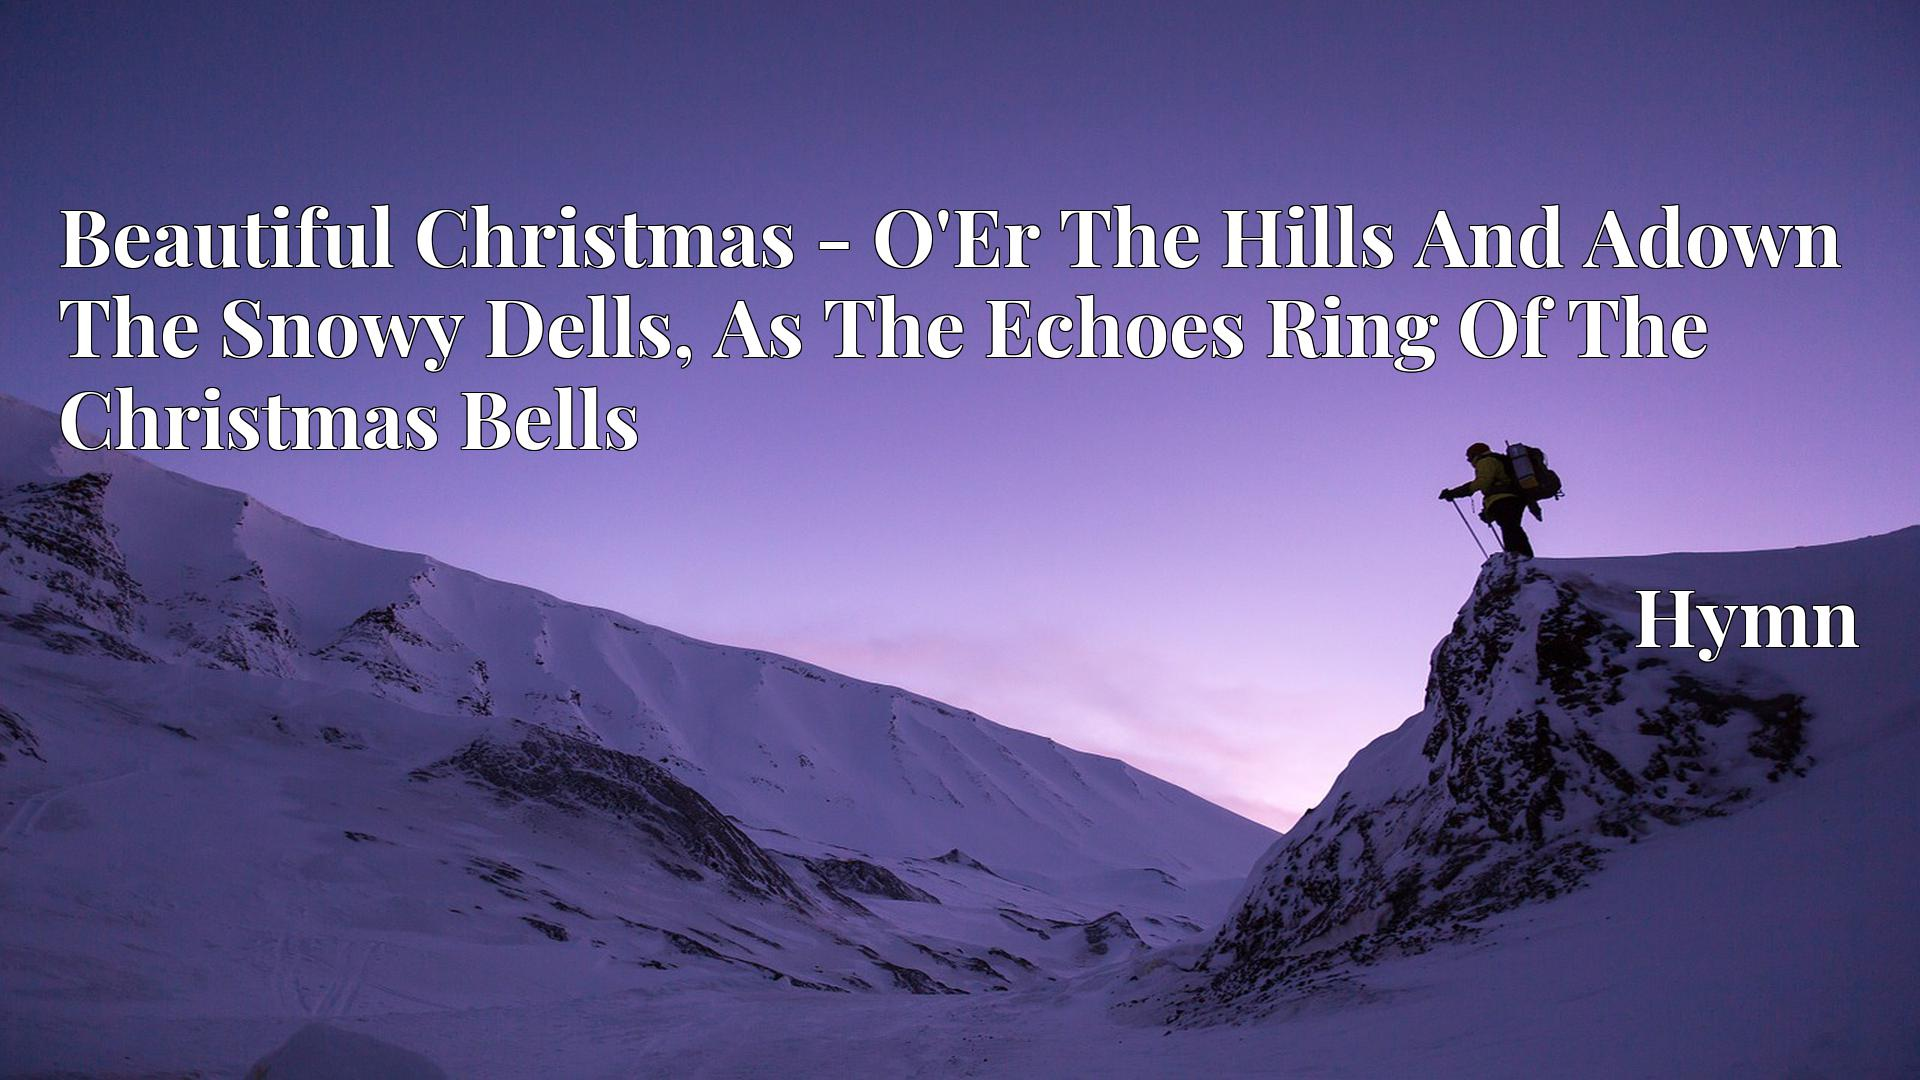 Beautiful Christmas - O'Er The Hills And Adown The Snowy Dells, As The Echoes Ring Of The Christmas Bells Hymn